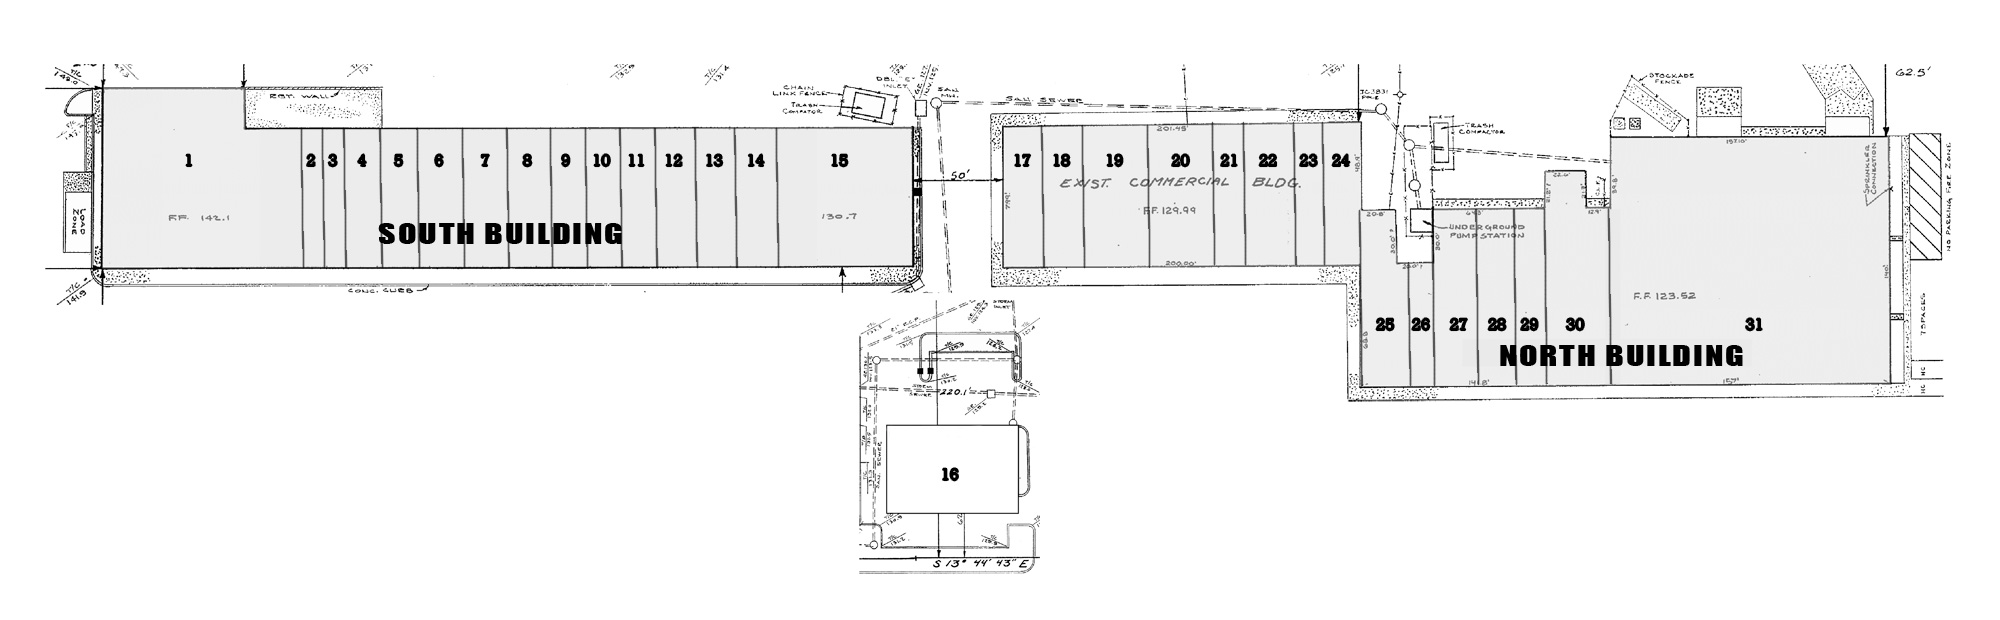 Howell Plaza Site Plan